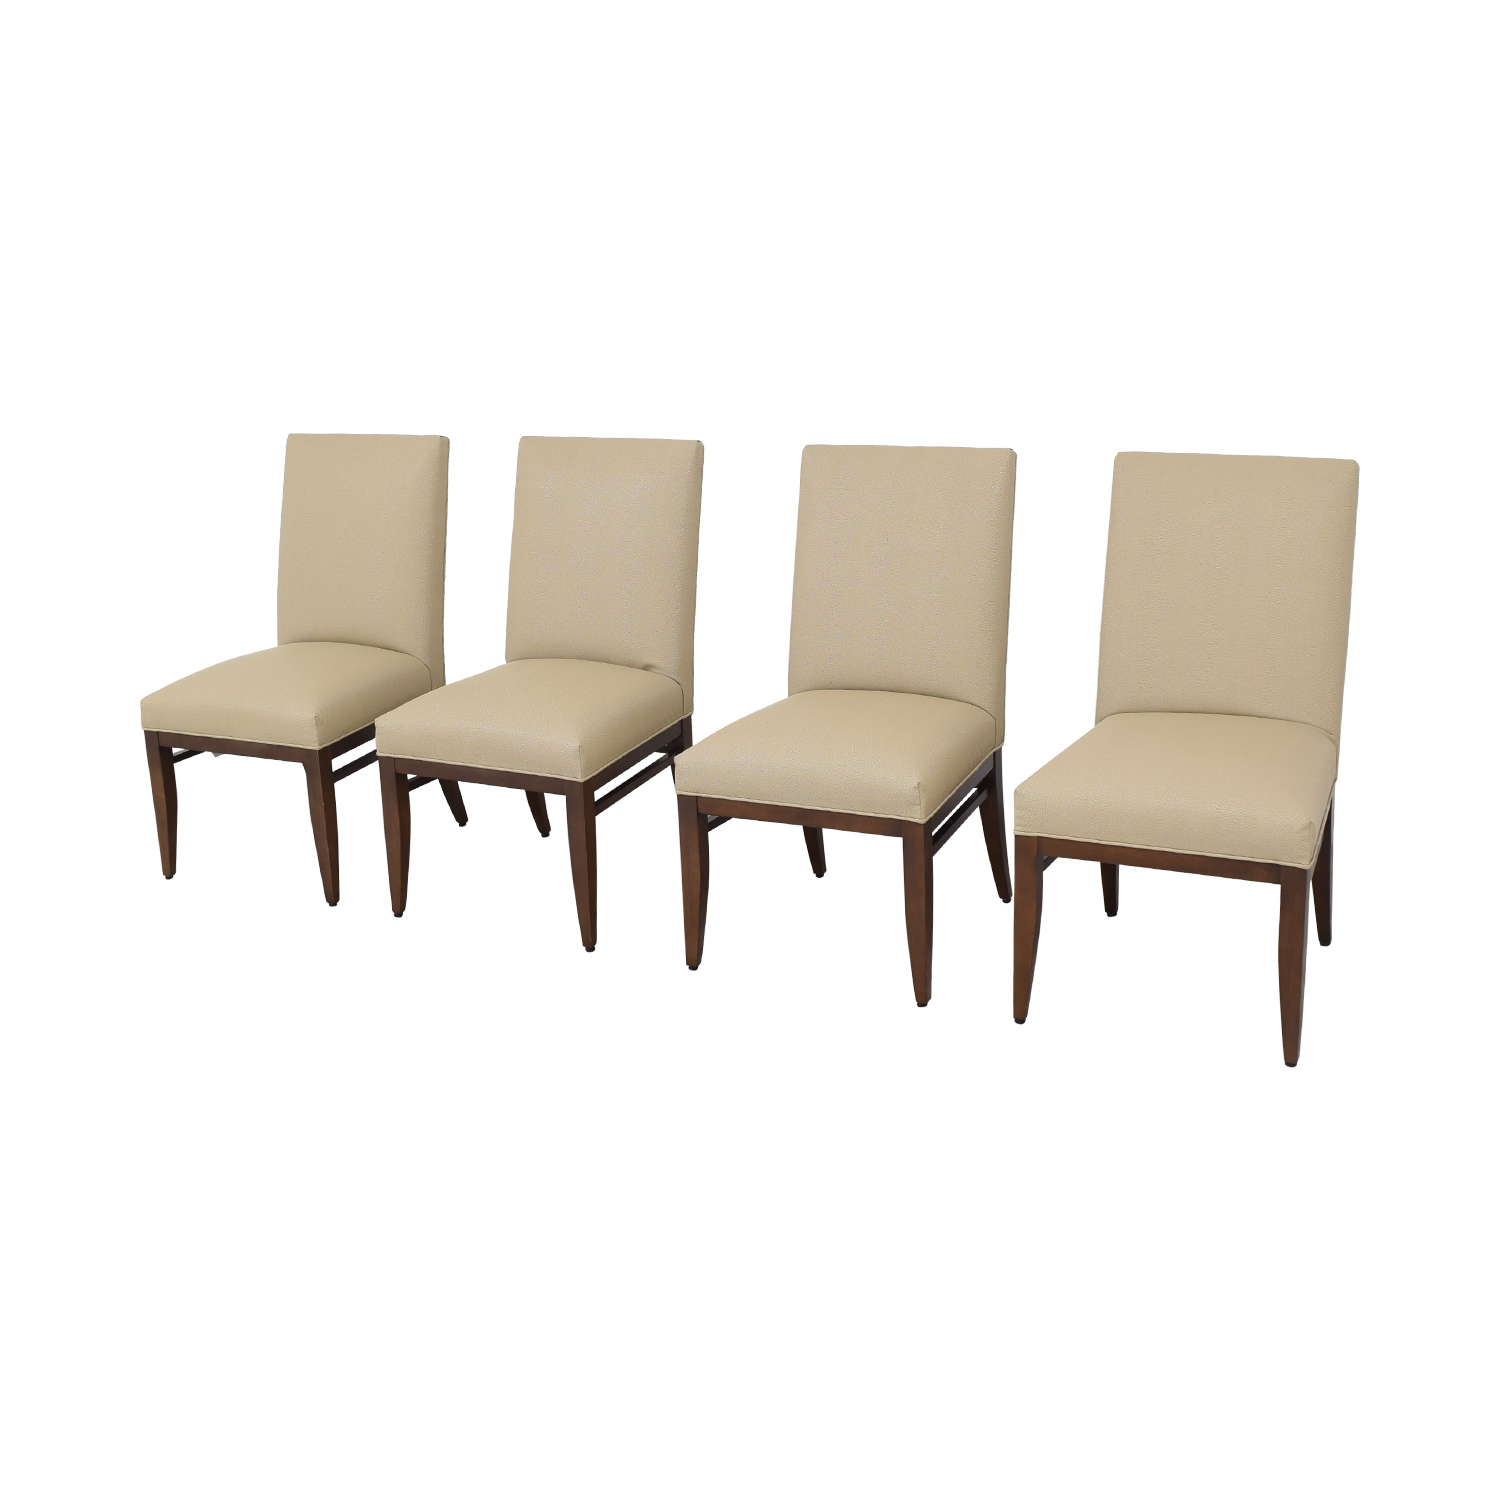 Duralee Duralee Kent Upholstered Dining Chairs nyc